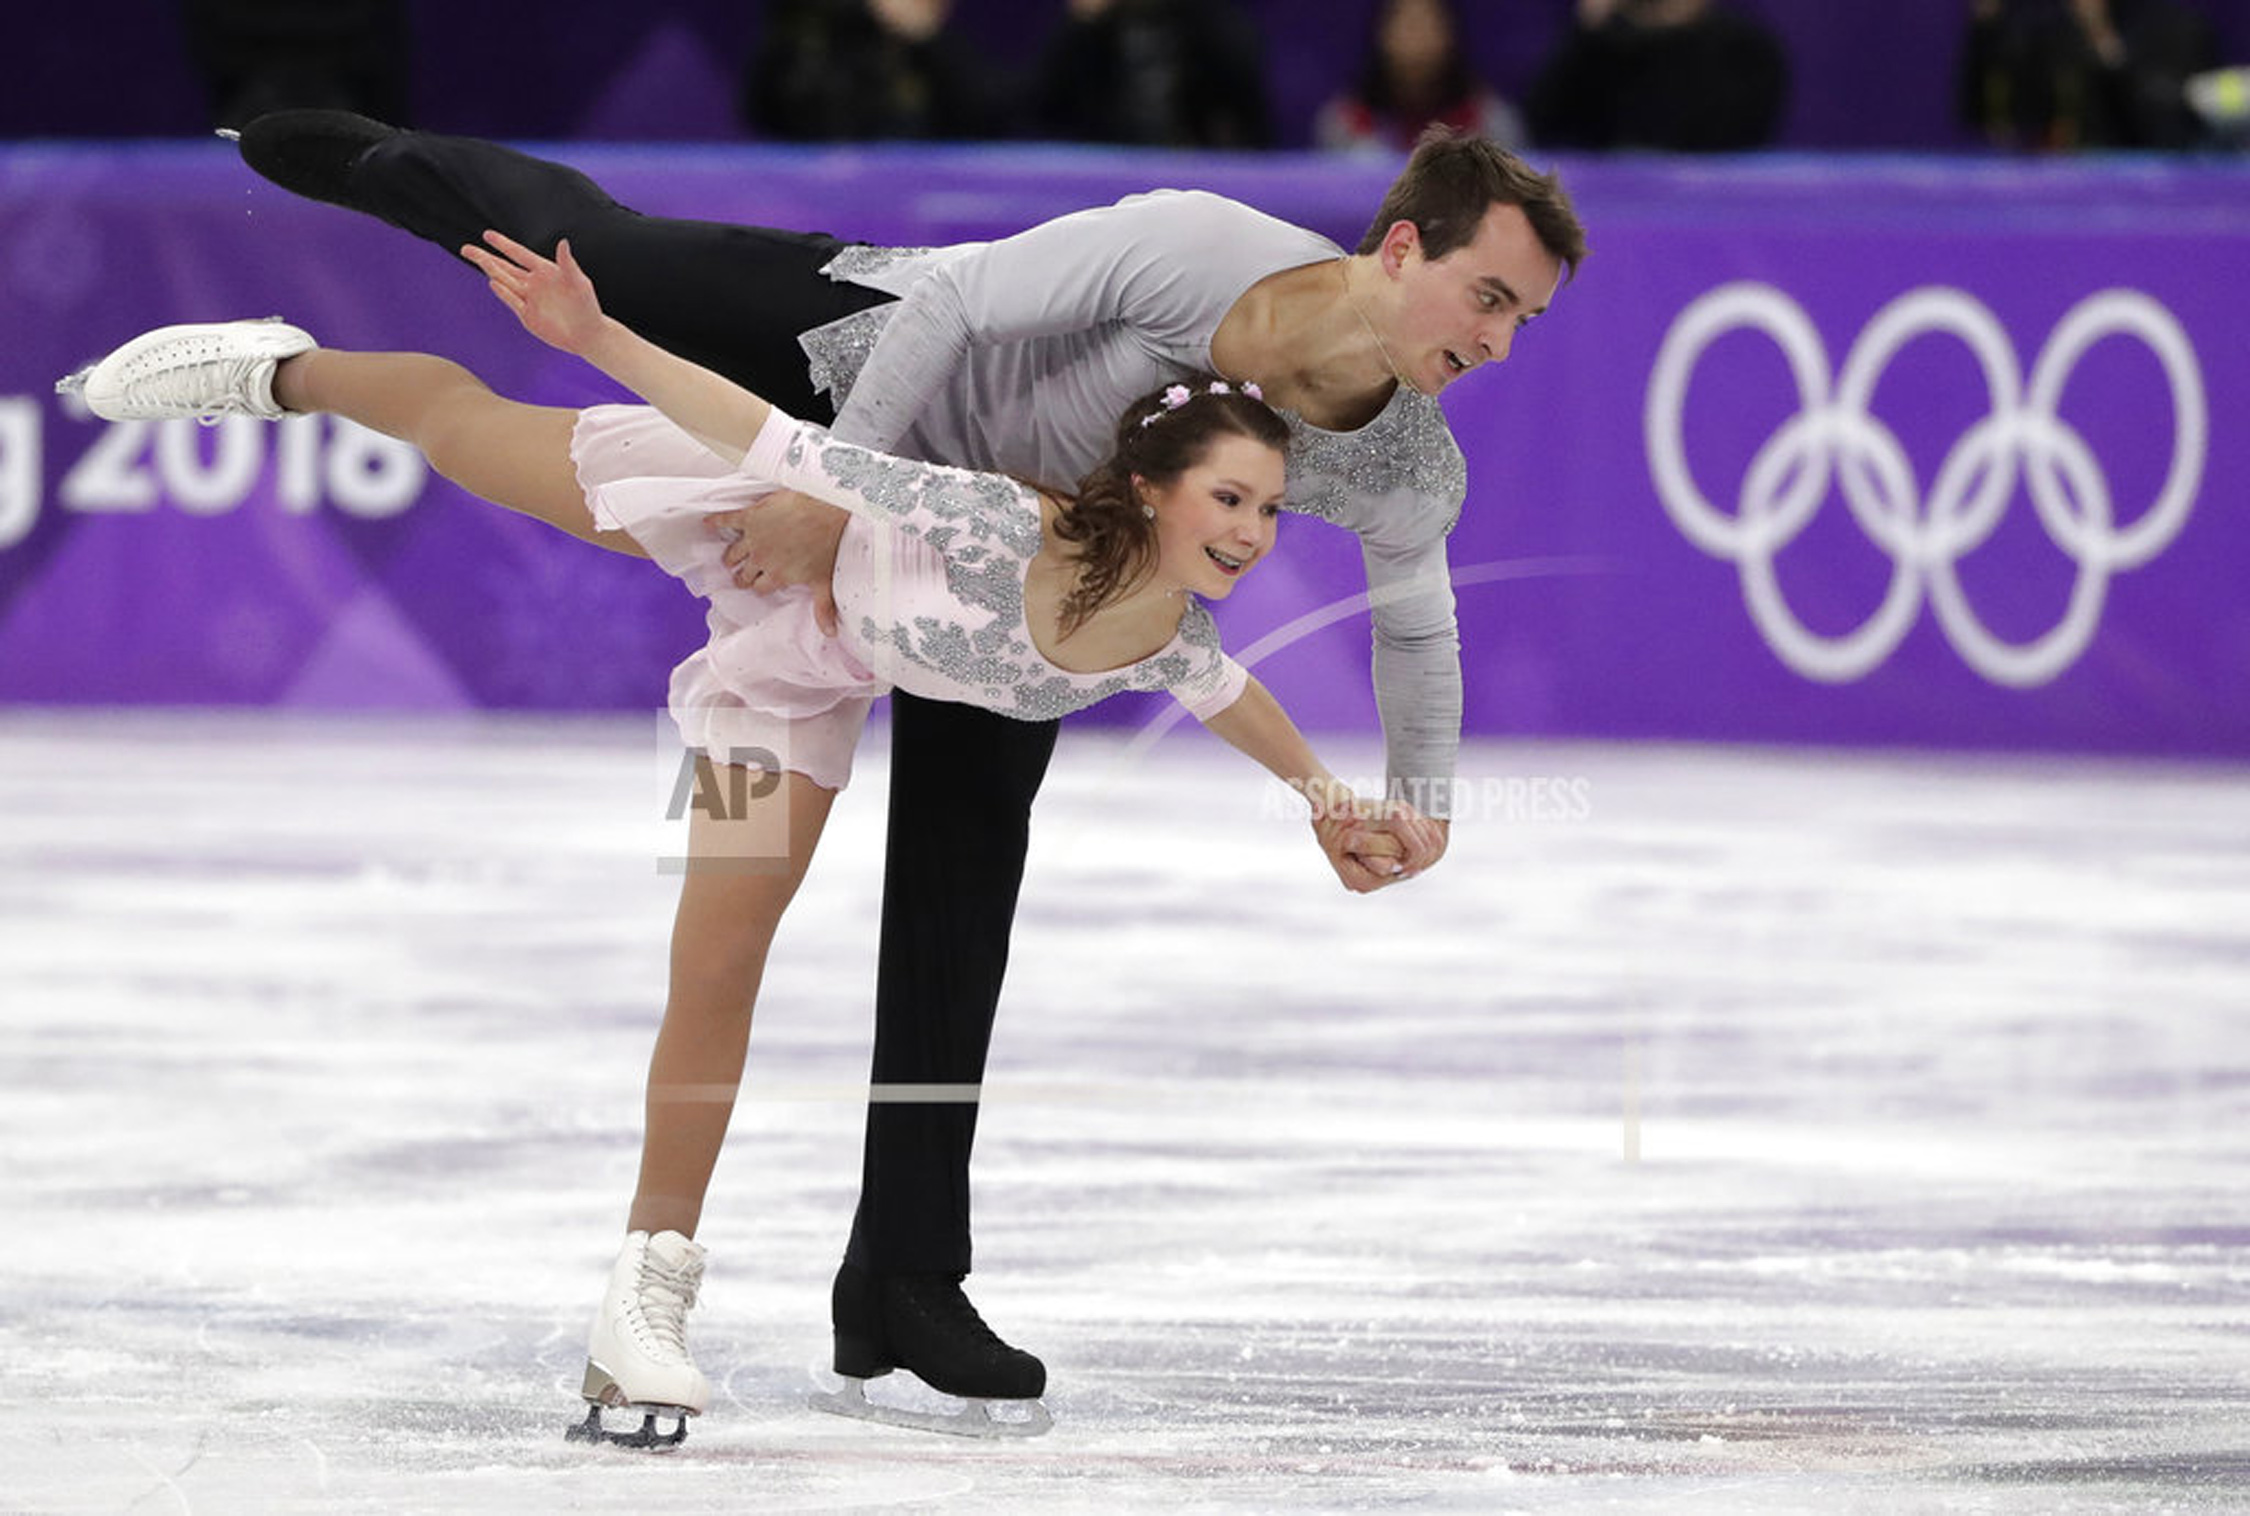 """pairs figure skaters dating How do figure skaters pick their partners  some kind of network that's sort of like an online dating site, but for pairs skaters looking for partners  """"pairs figure skating requires a ."""